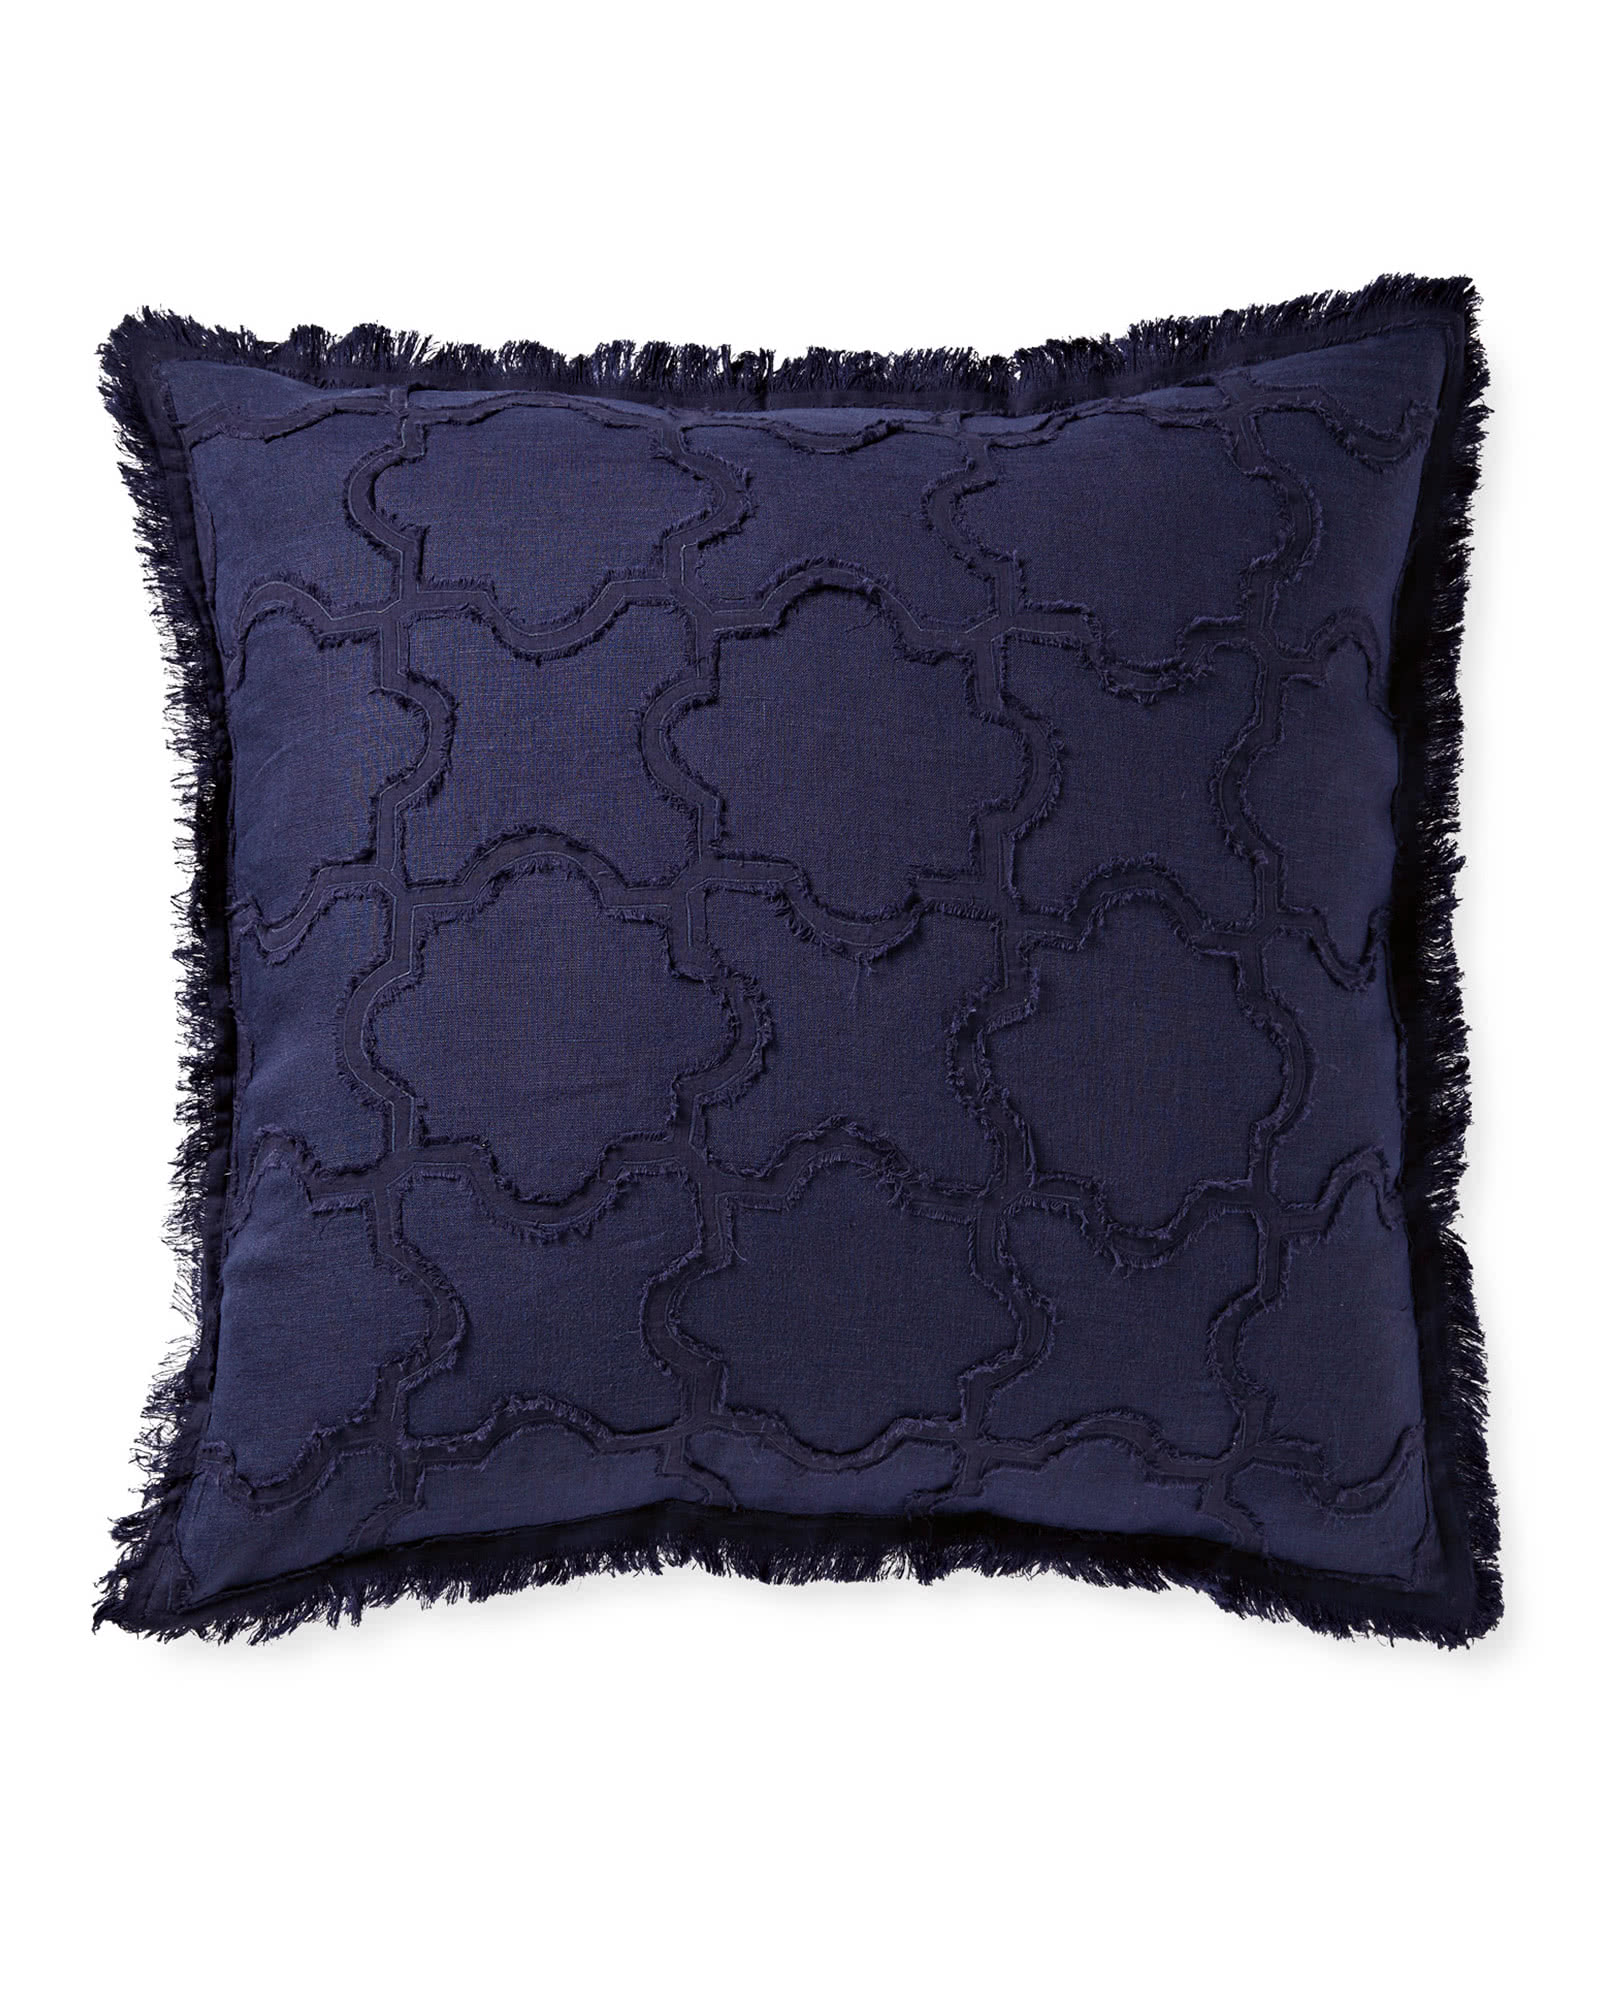 Barcelona Pillow Cover,